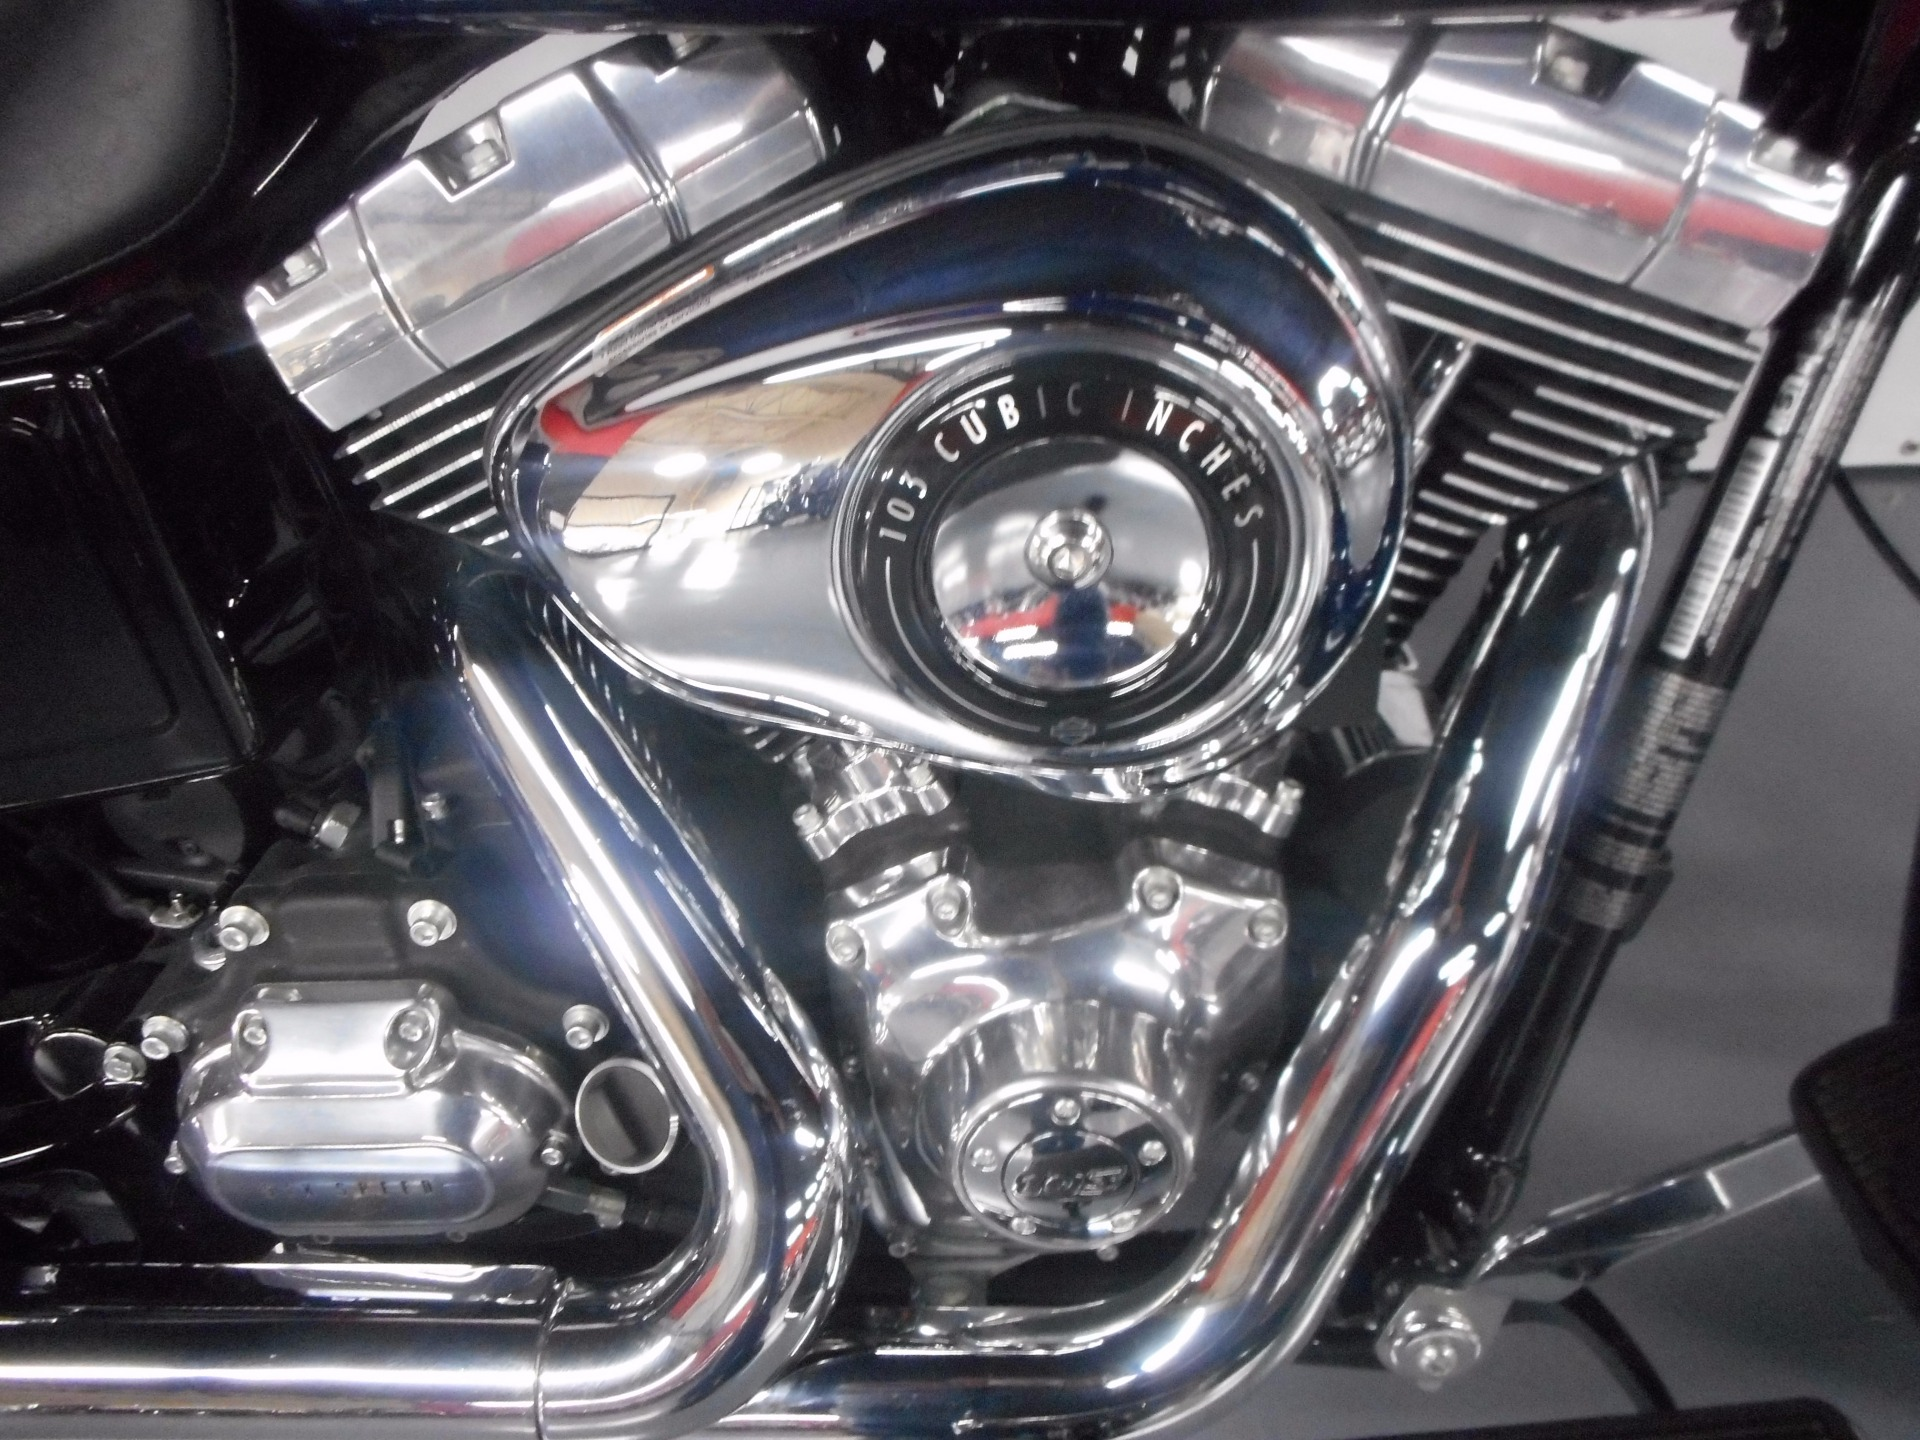 2013 Harley-Davidson Dyna® Switchback™ in Milwaukee, Wisconsin